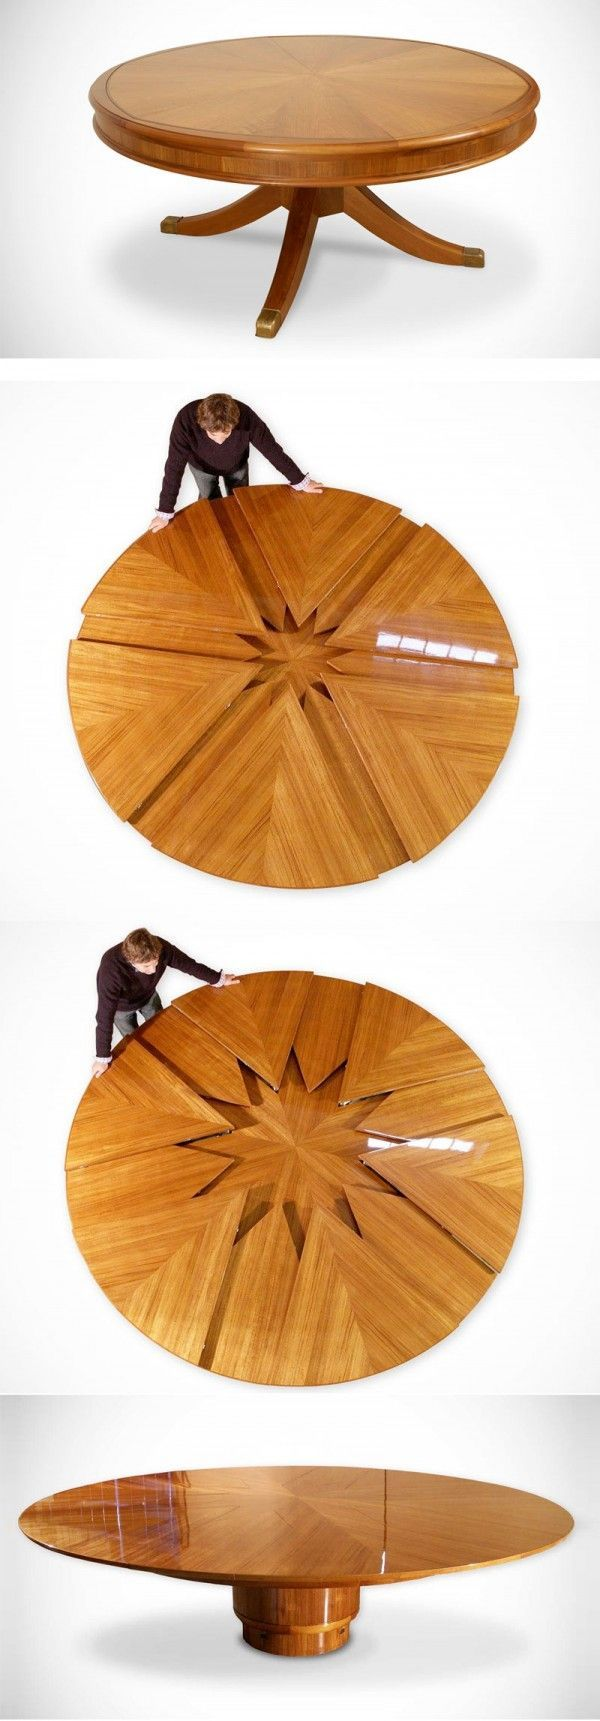 Expandable Round Table Dailylifebuff Extendable Dining Table Expandable Dining Table Round Extendable Dining Table